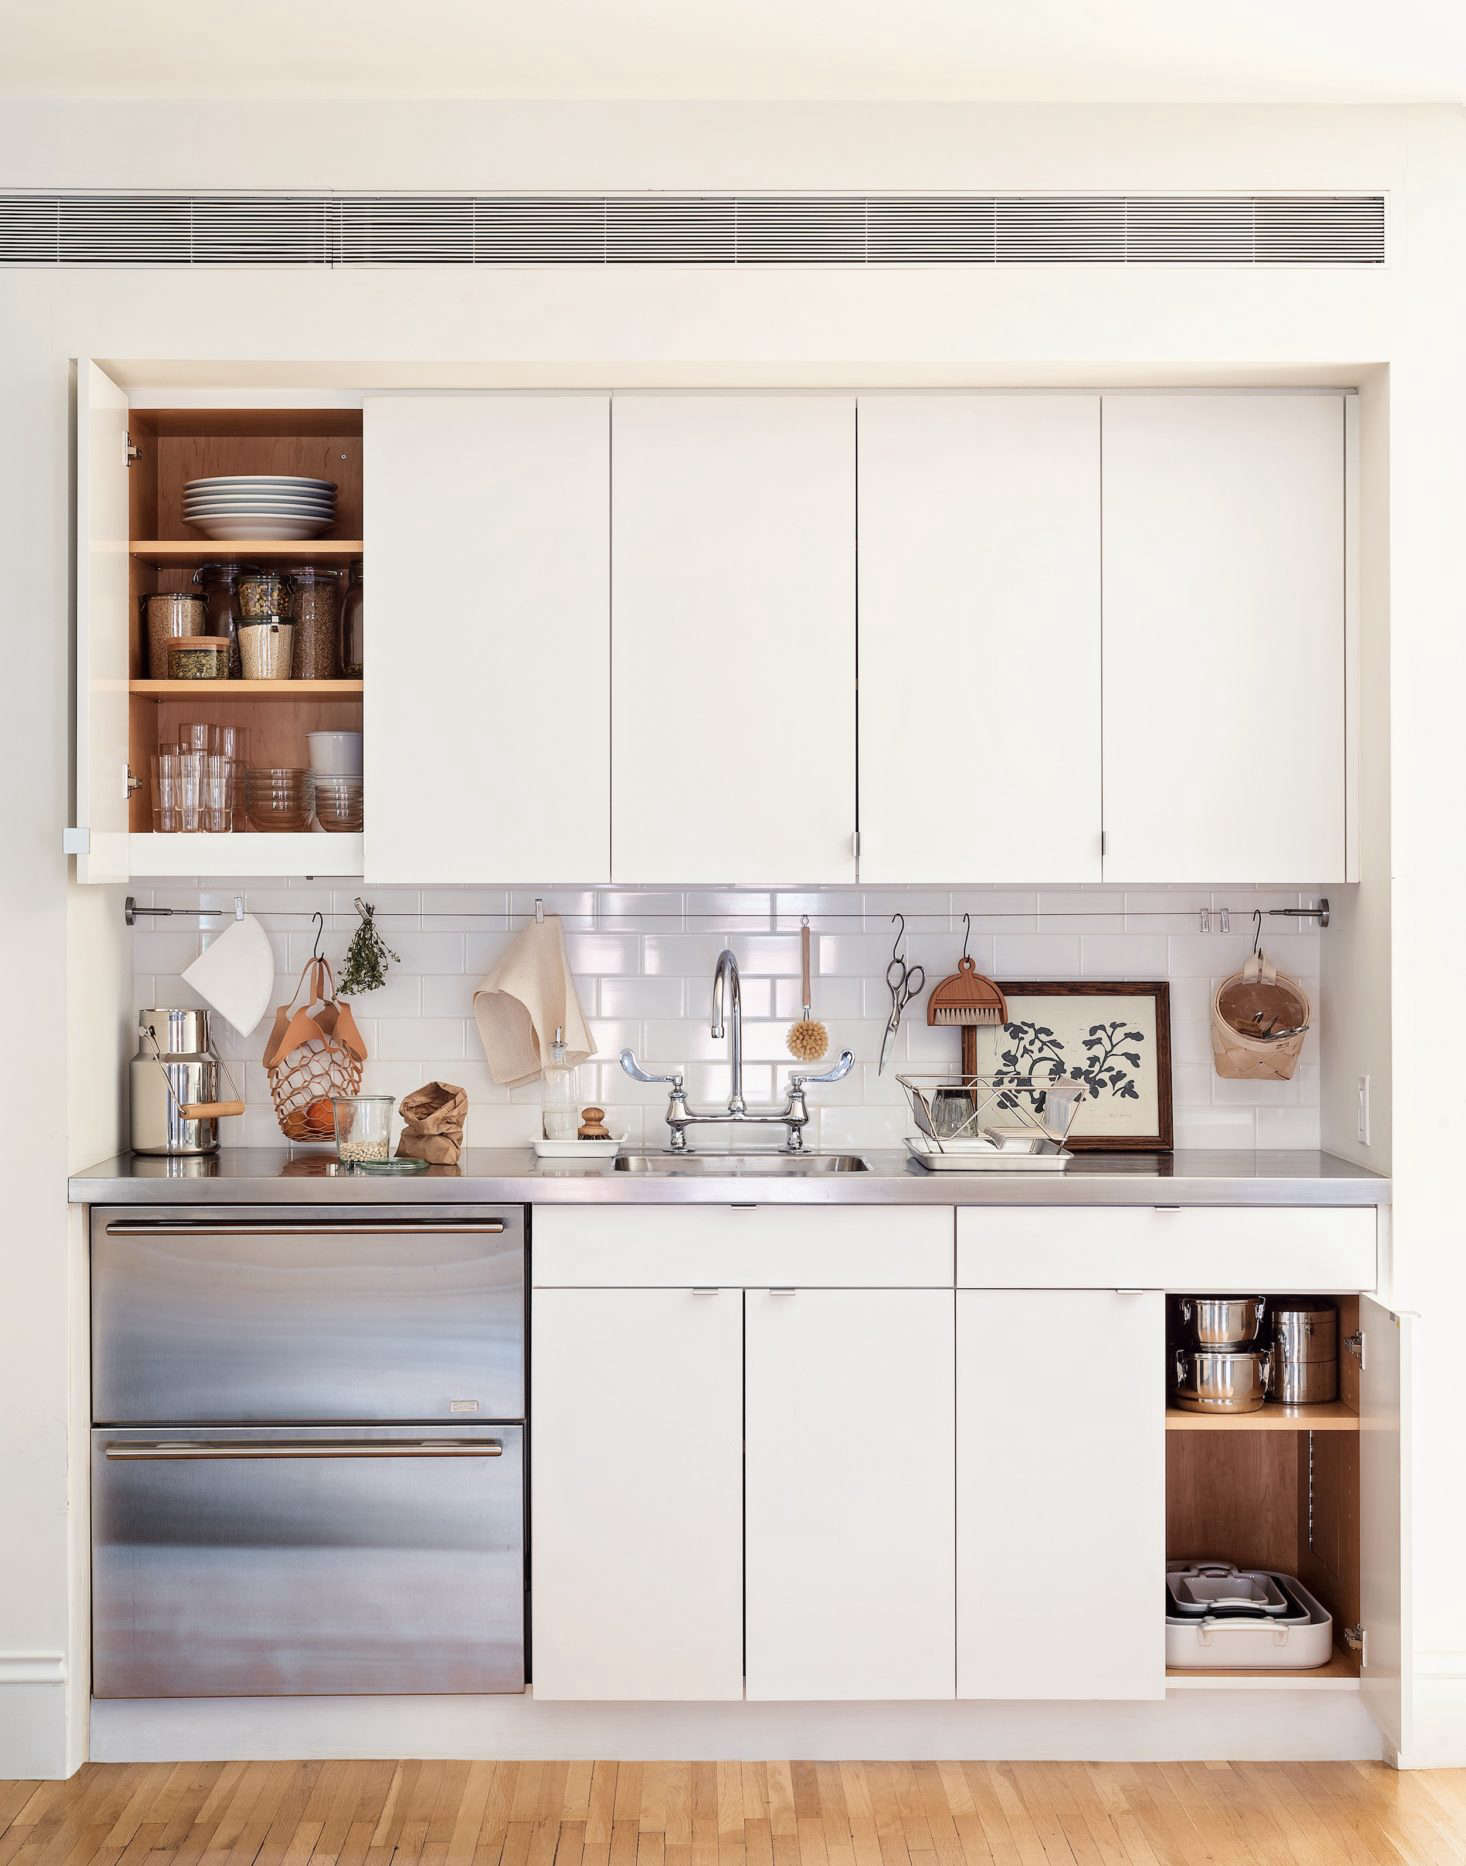 Trending On The Organized Home Space Saving Storage